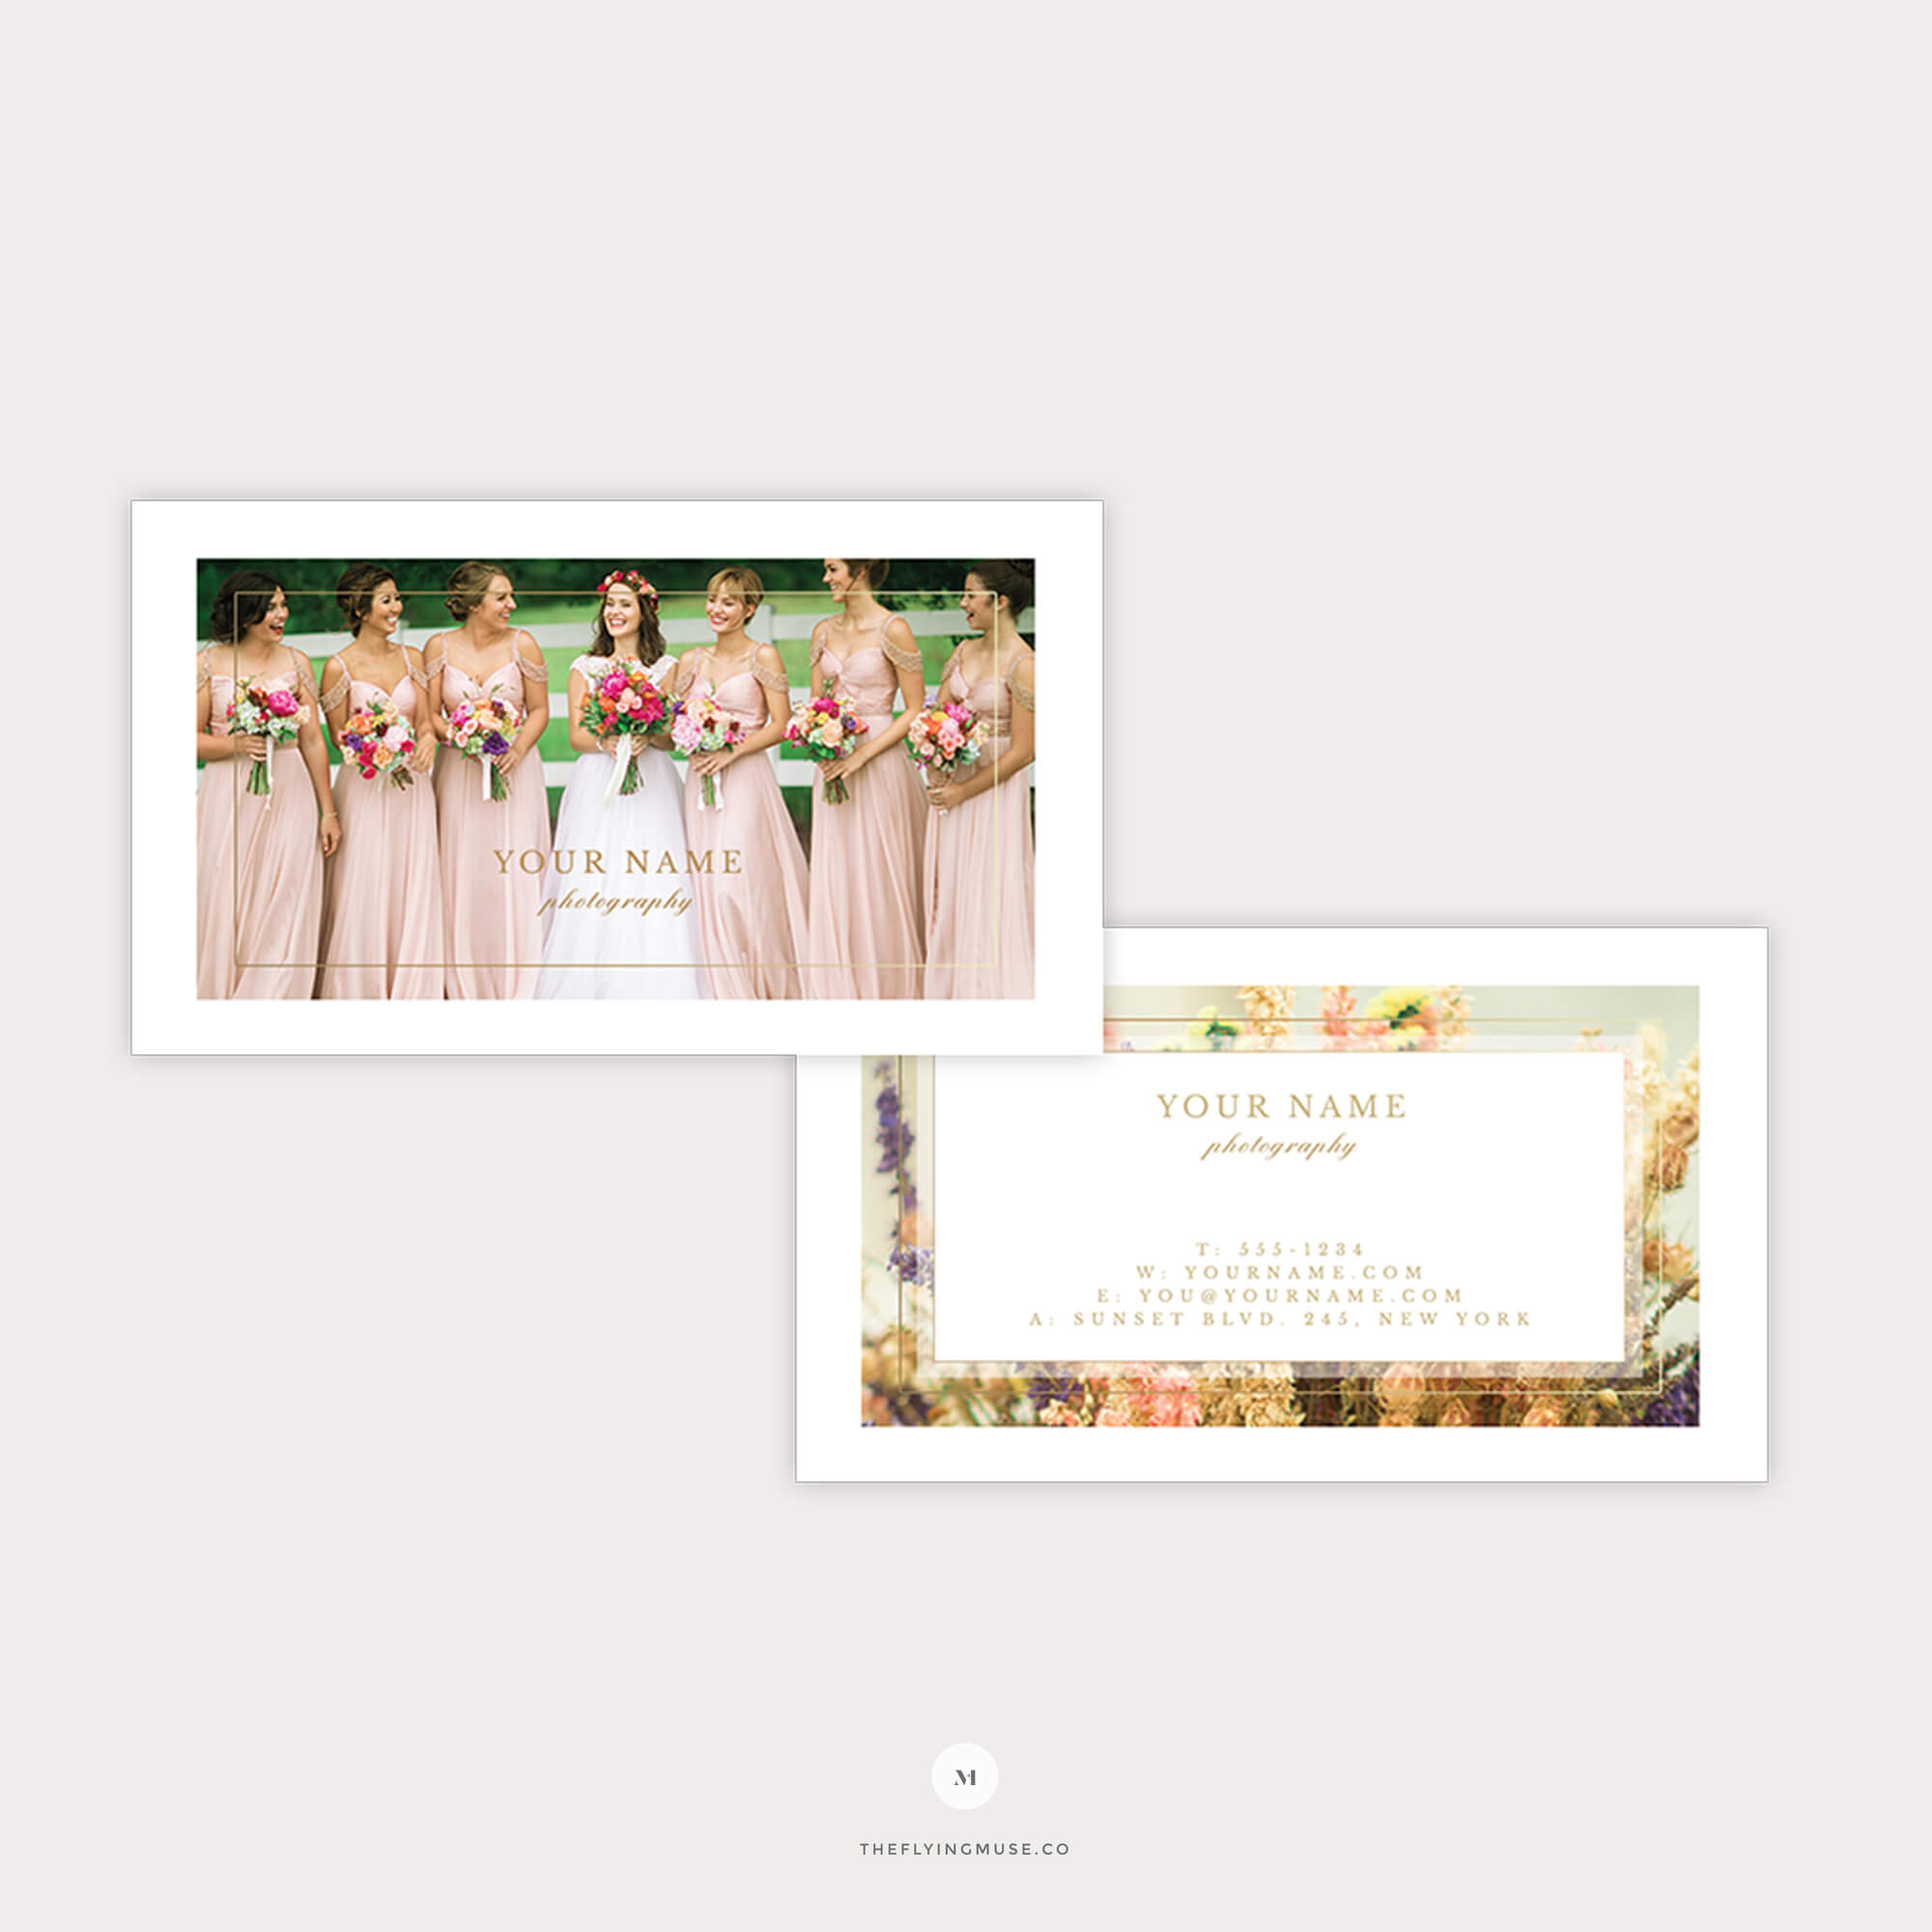 Elegant Wedding Photography Business Card Template – The Flying Muse Throughout Photography Referral Card Templates